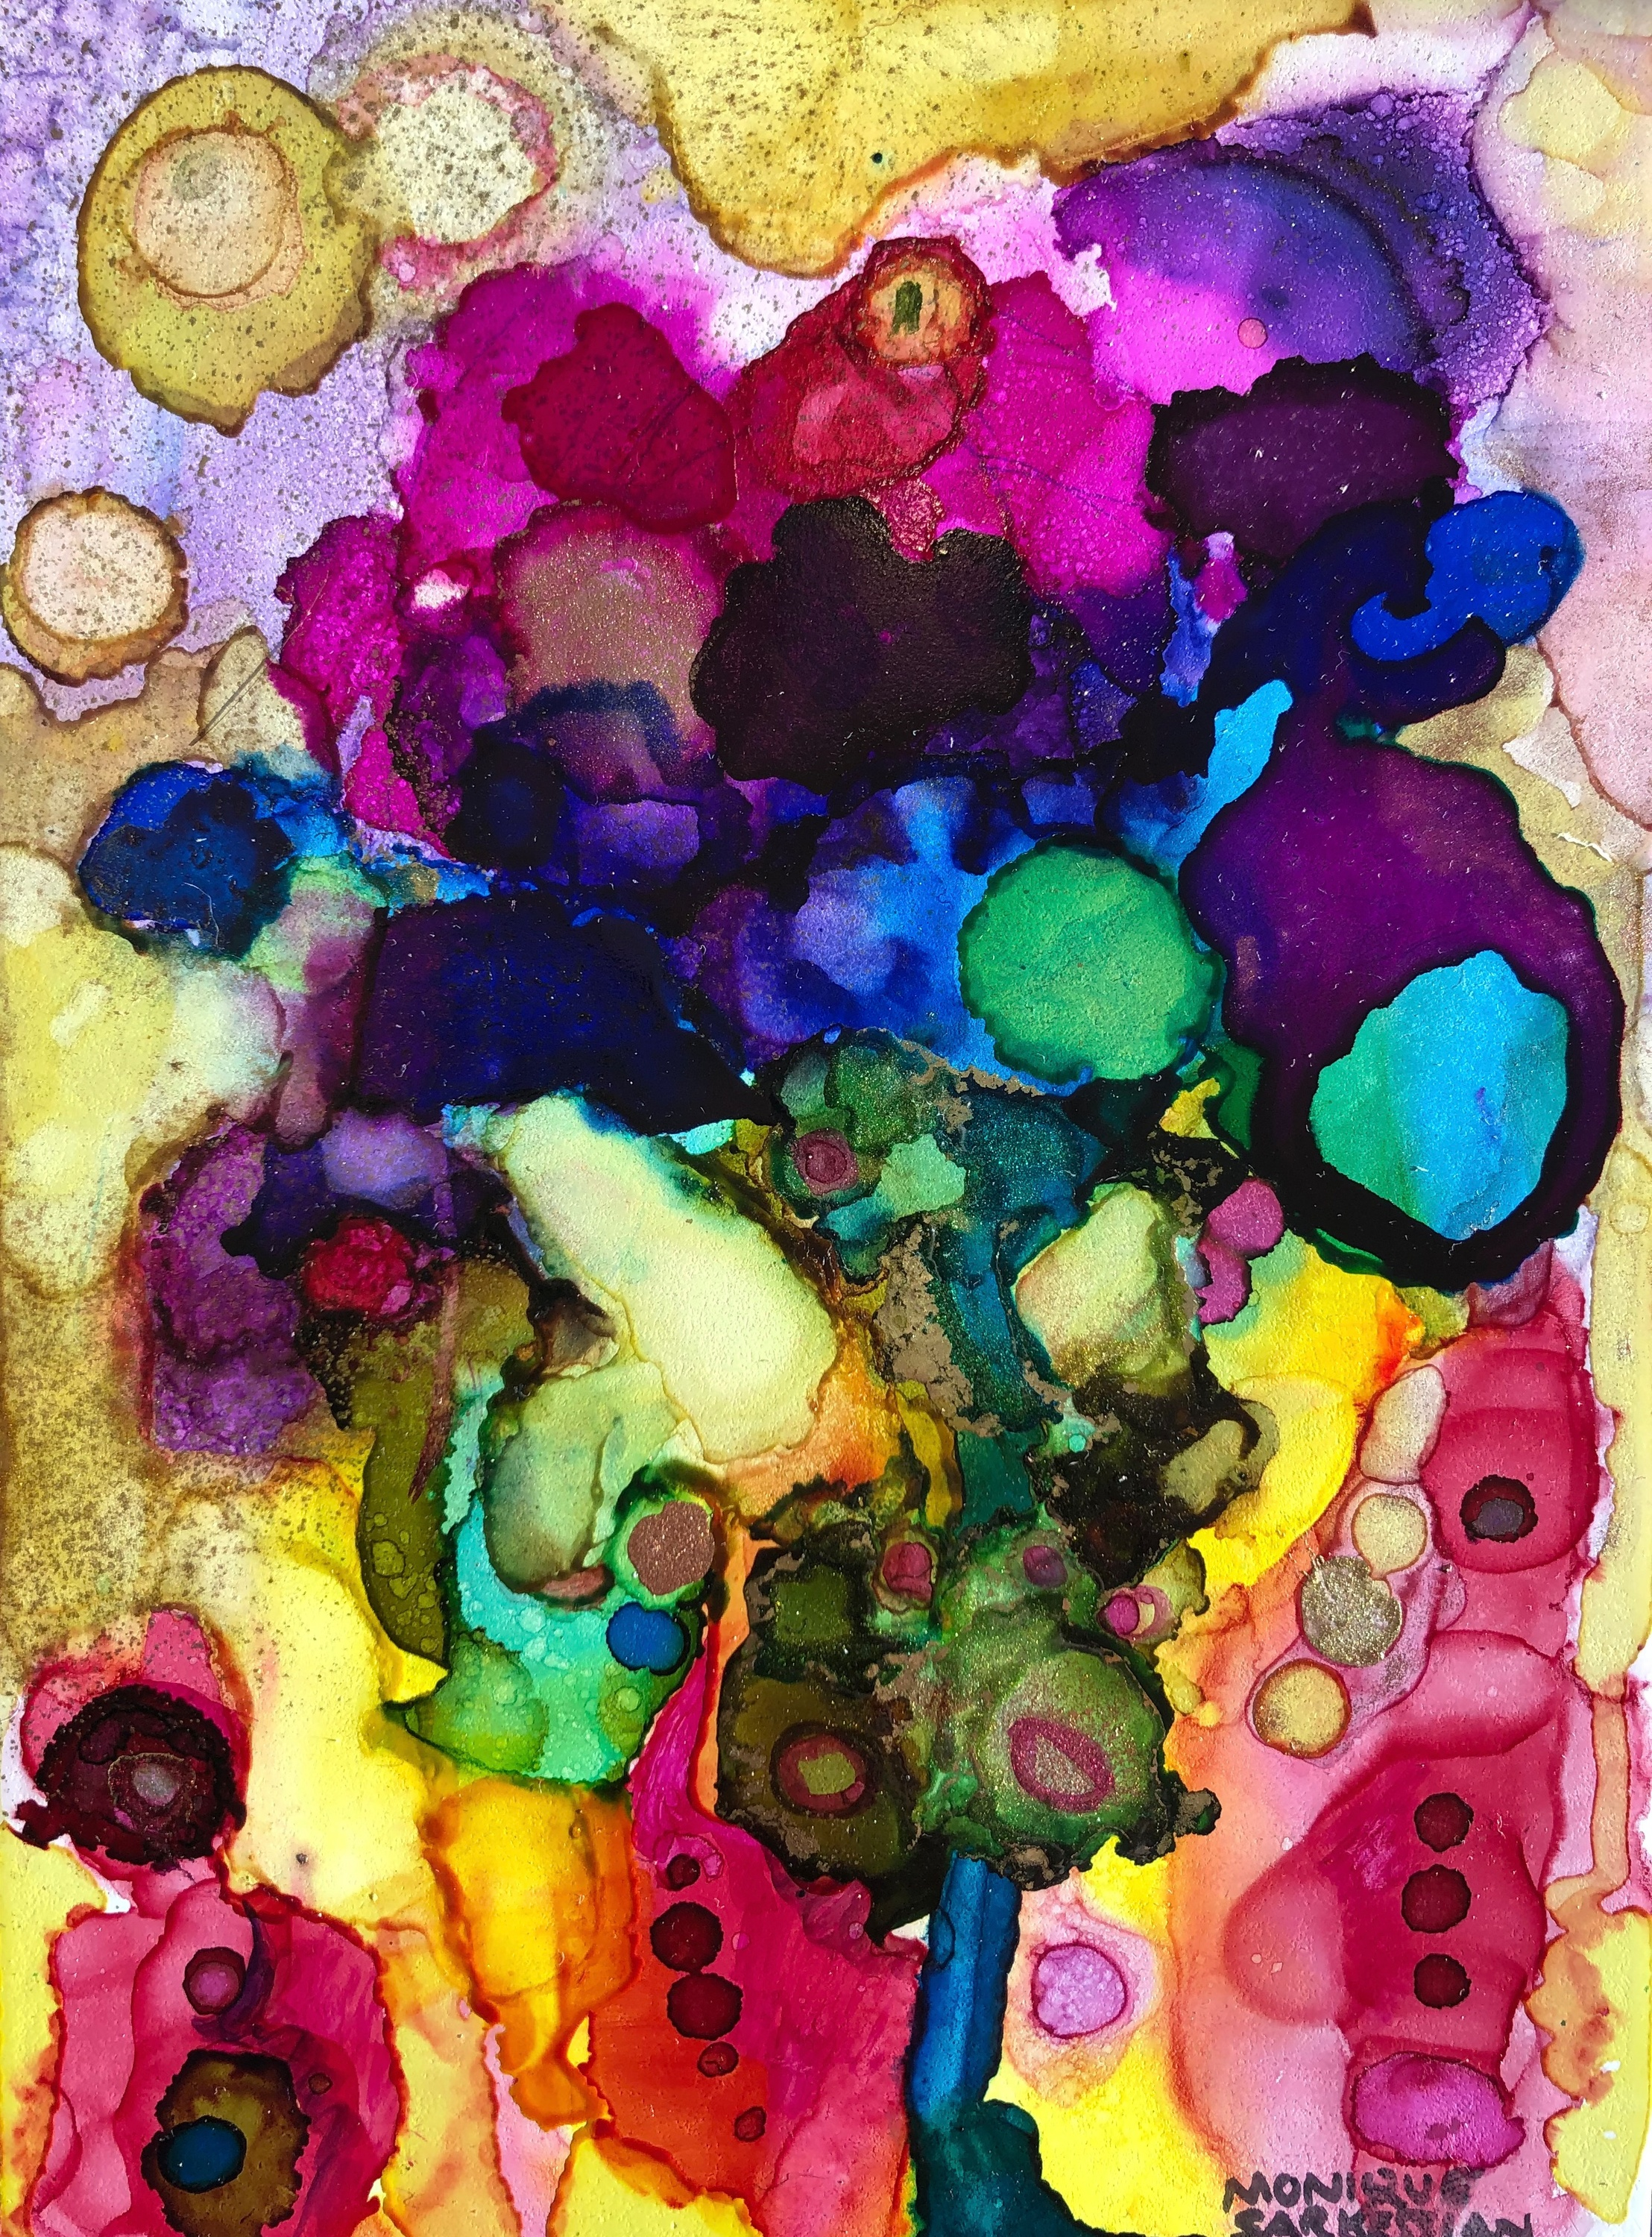 Glory carriers 21 alcohol ink and mixed media on wood 7x5 zpfs0n